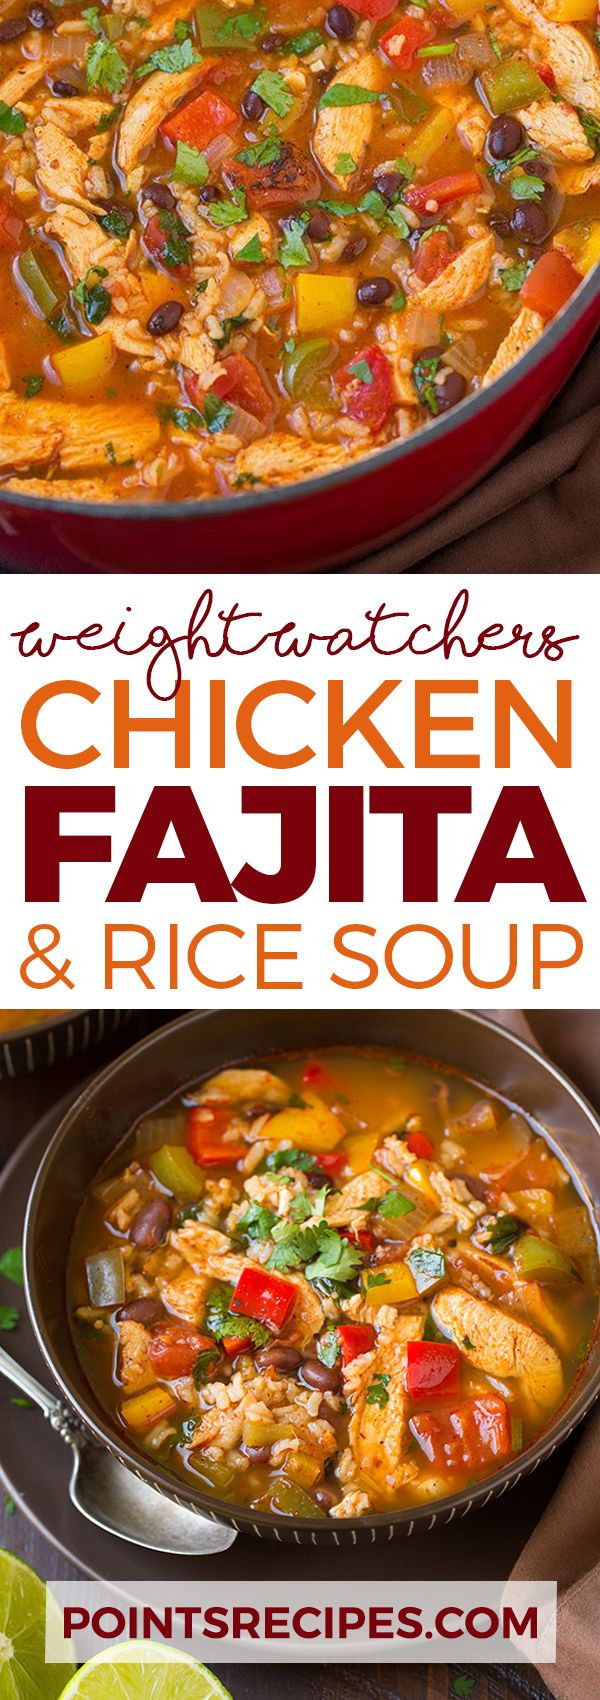 Chicken Fajita and Rice Soup - WEIGHT WATCHERS